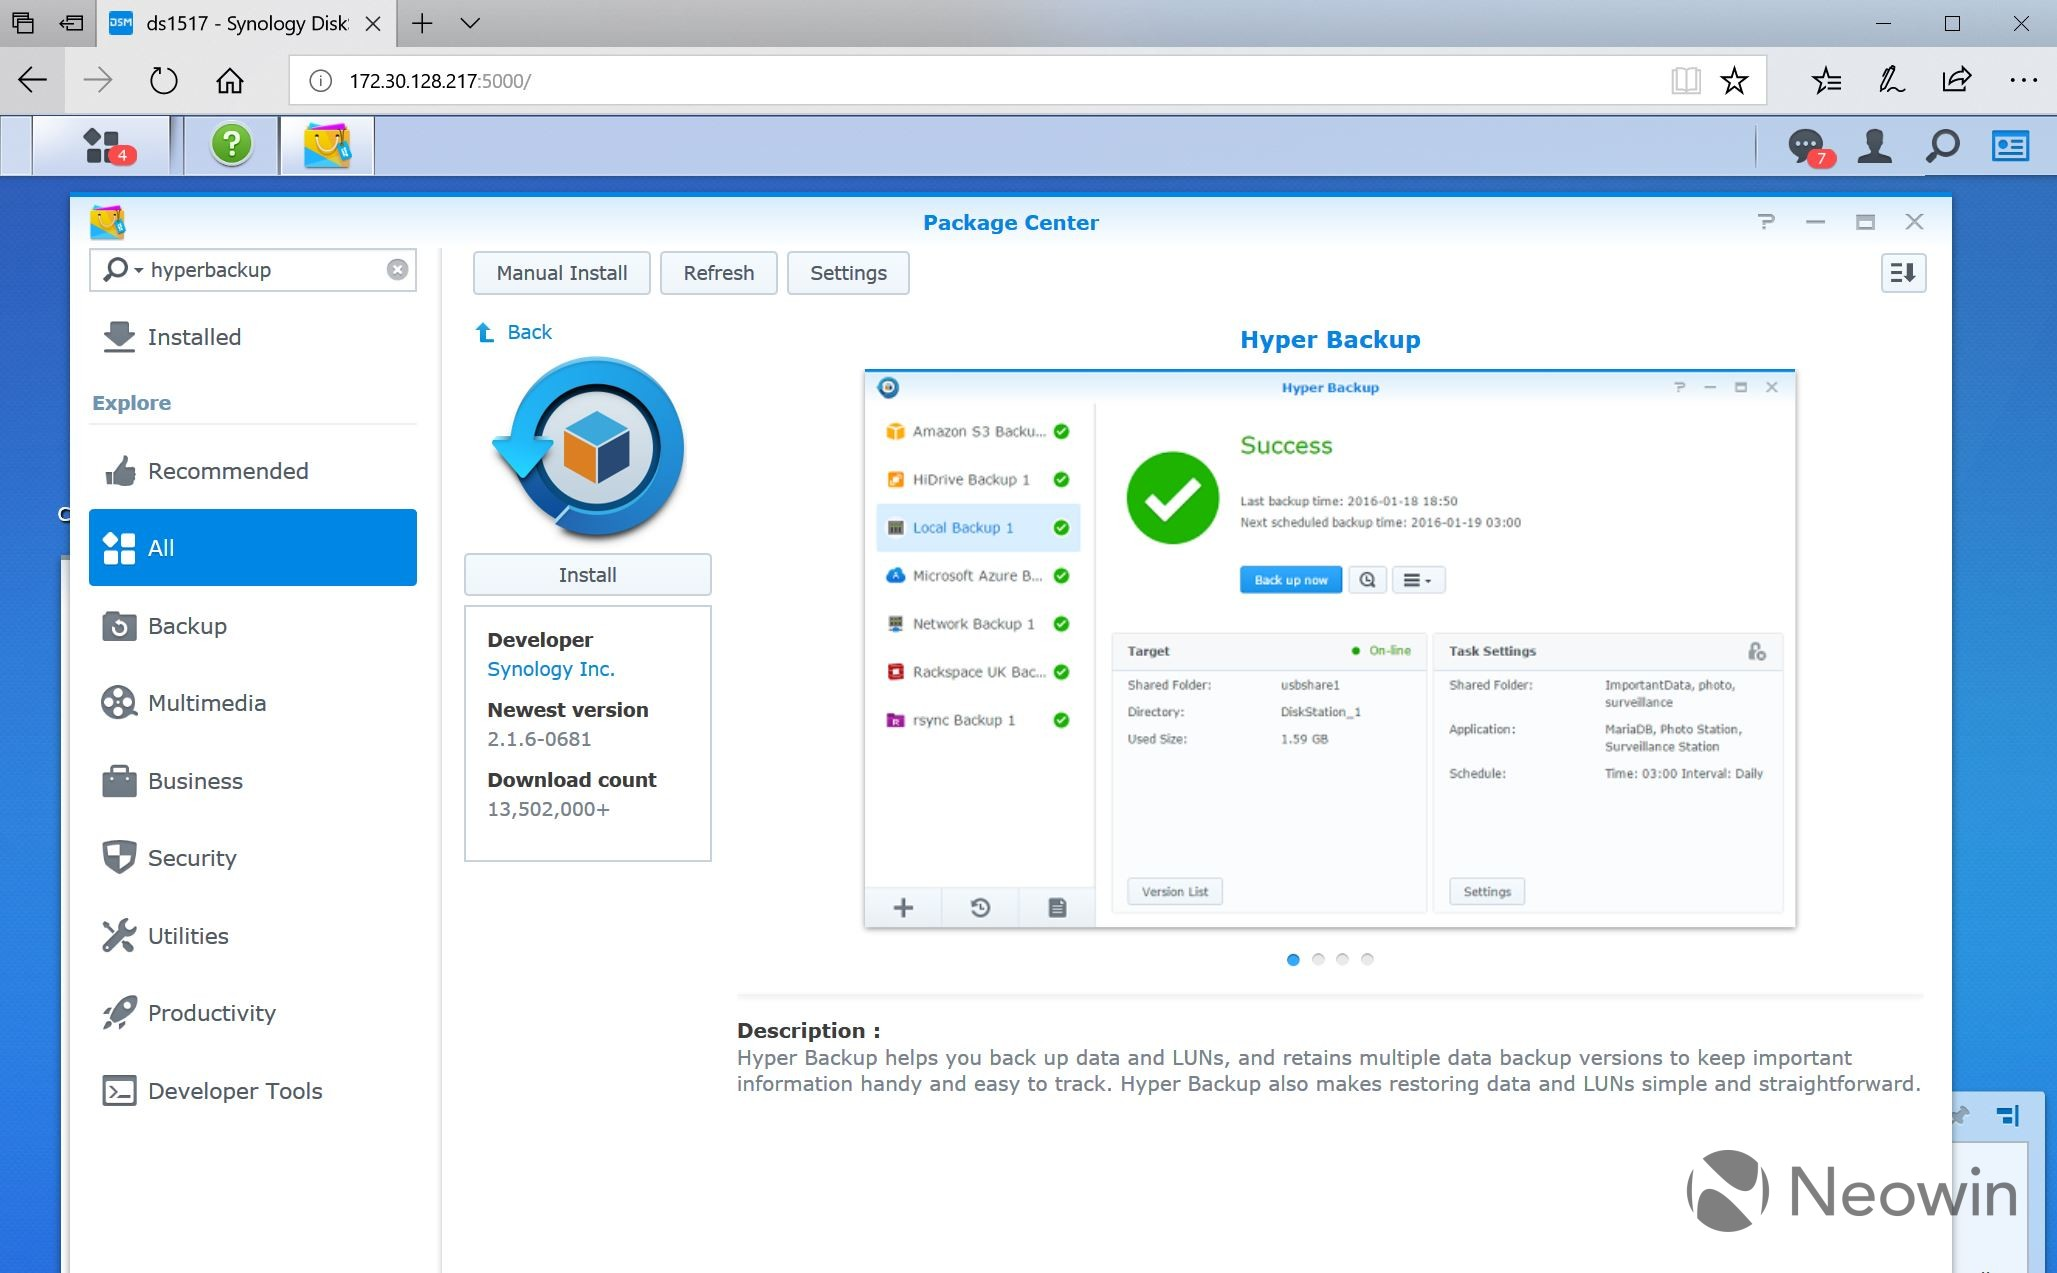 Synology expands C2 backups from Europe to the entire world